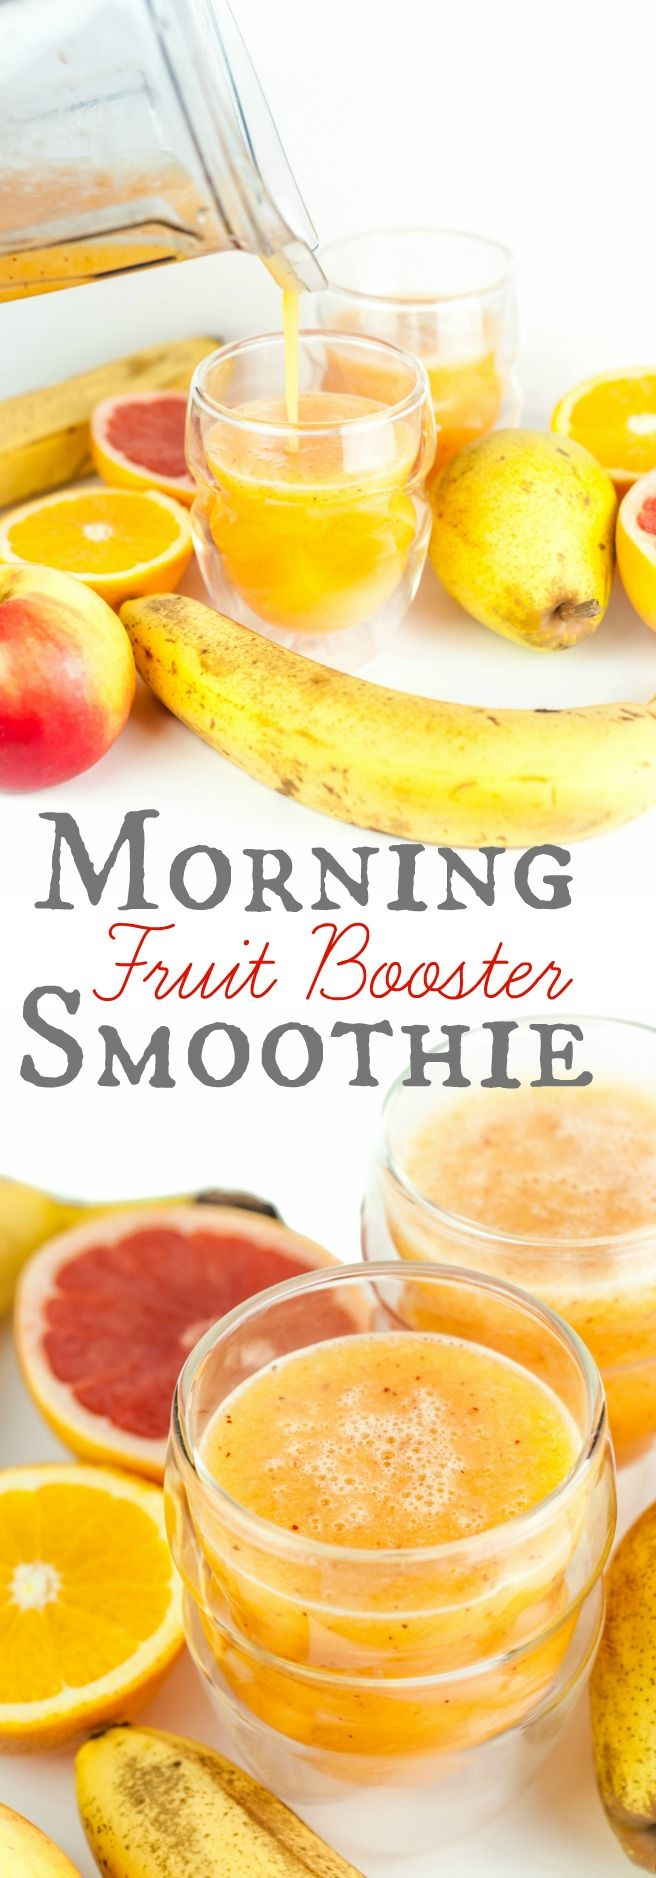 Morning Fruit Booster Smoothie. A fresh and zingy morning smoothie which will wake you up and help you stay energized for those busy hours to come.